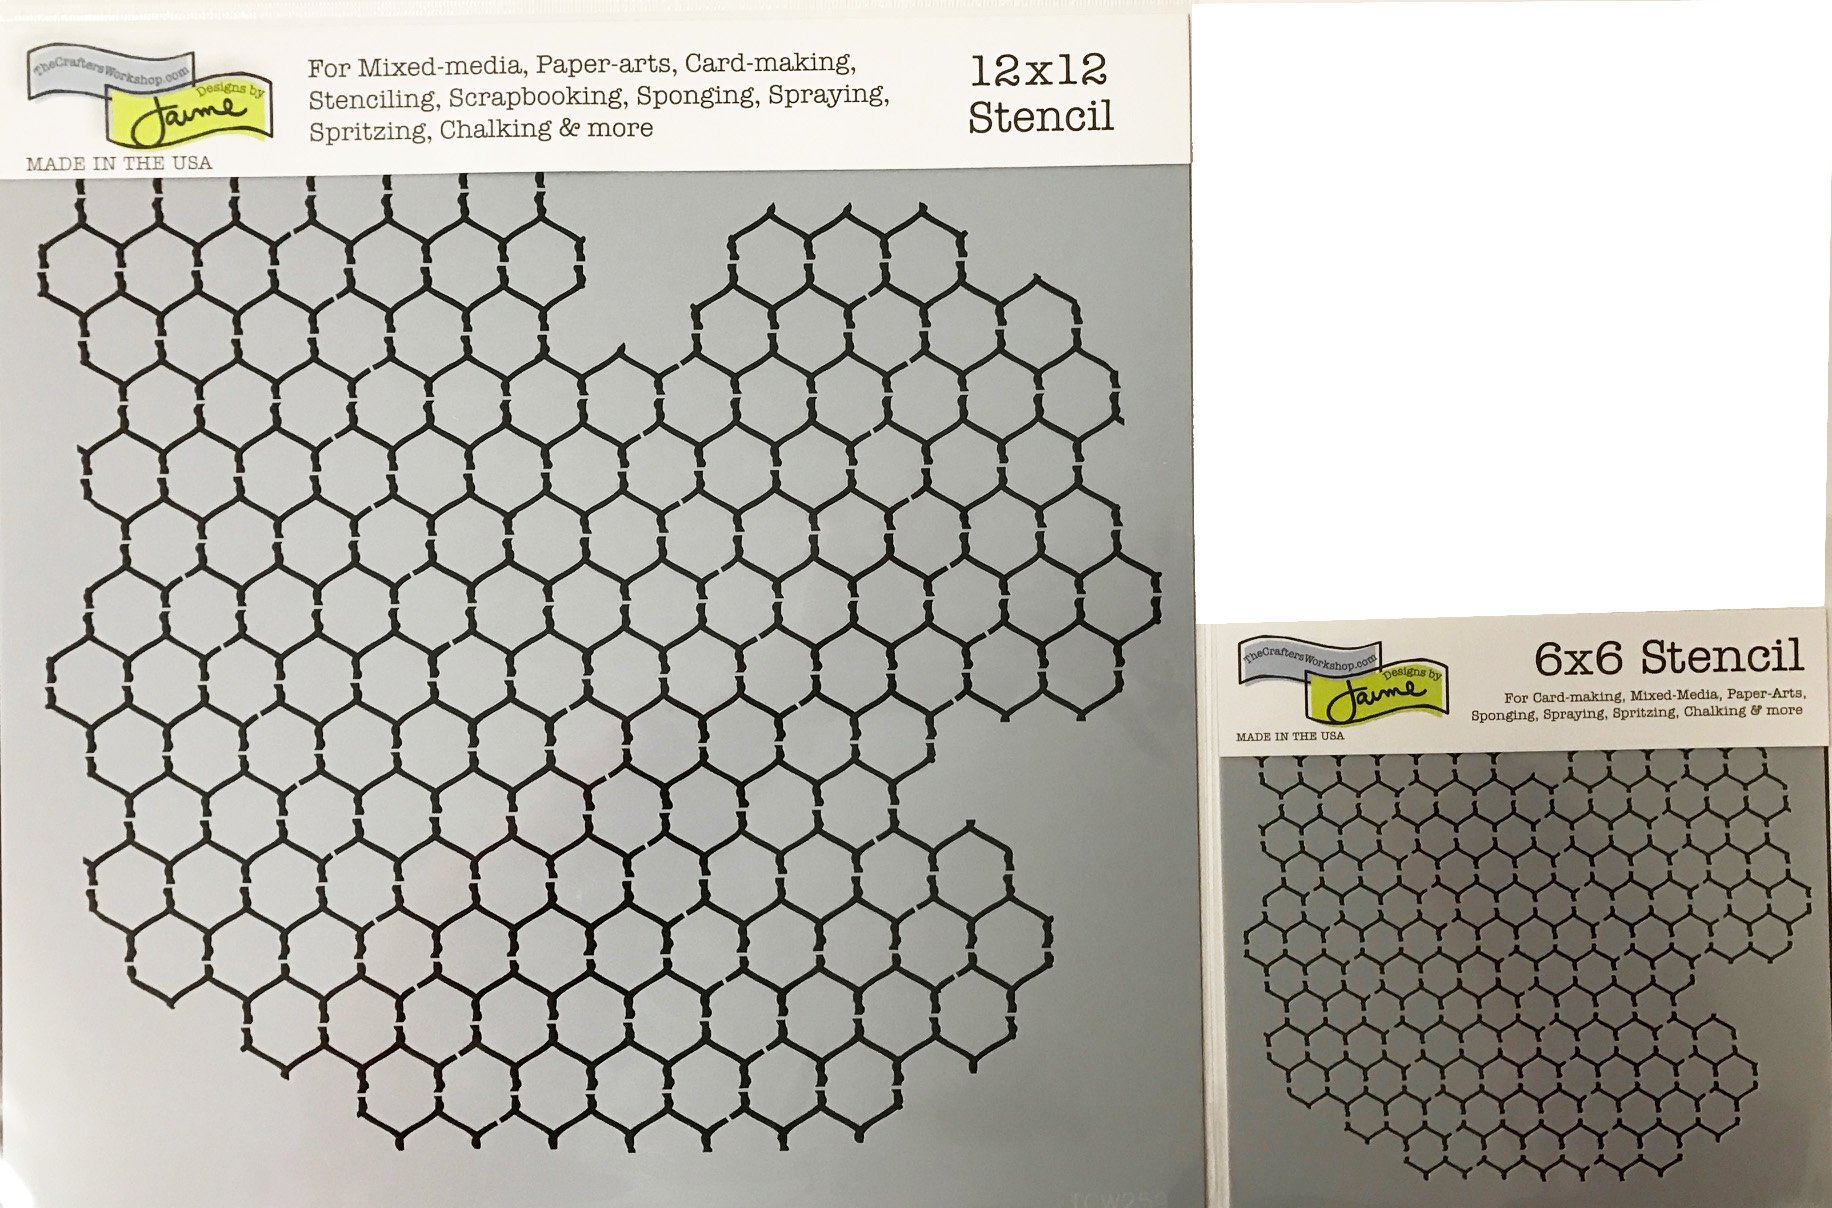 The Crafter's Workshop Set of 2 Stencils – Chicken Wire Reversed 12x12 Large and 6x6 inch Mini - Includes 1 each TCW259 and TCW259s - Bundle 2 Items